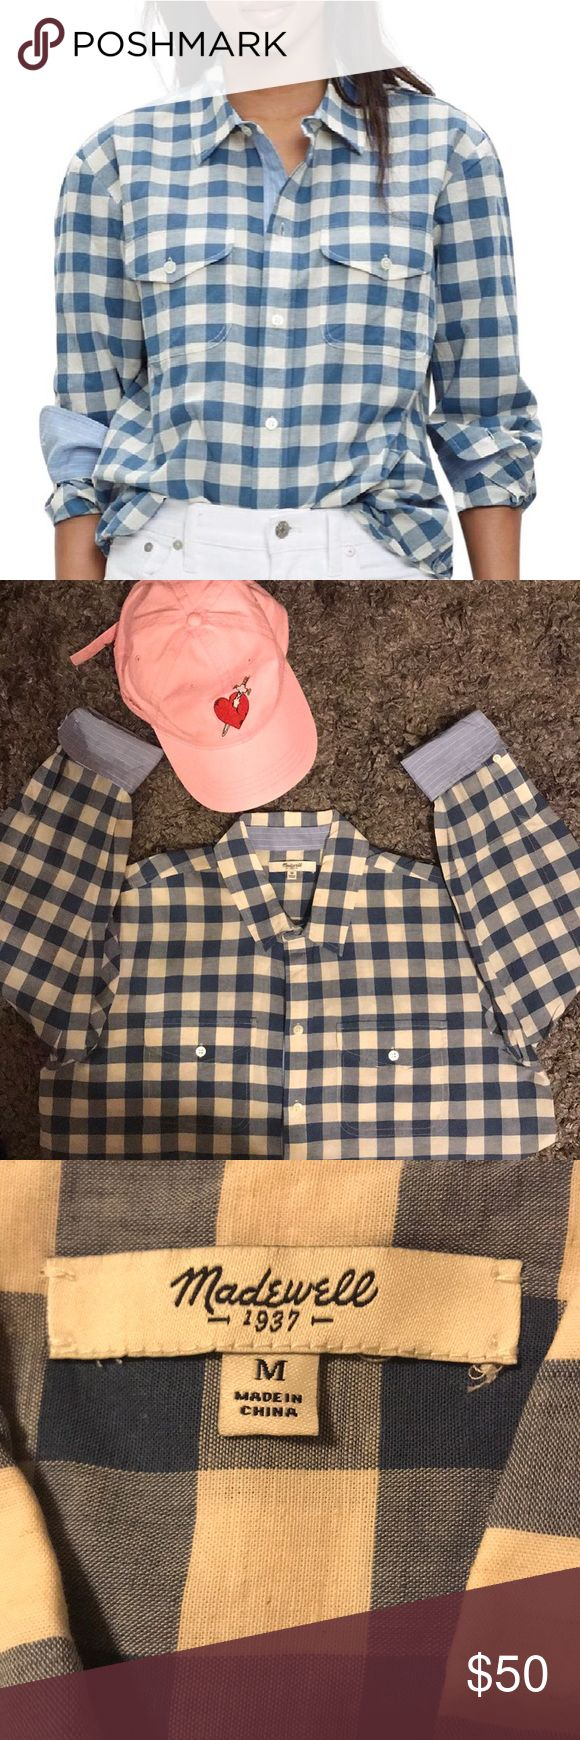 Blue Gingham Cargo Work Shirt Button-down Top Med Uber cute ‼️JUST IN TIME FOR THE QUICKLY APPROACHING SEASONS!! Cargo shirt in lightweight gingham check, with overlapping shirttails in front for an easy undone look. True to size. Cotton/linen. GREAT CONDITION Madewell Tops Button Down Shirts